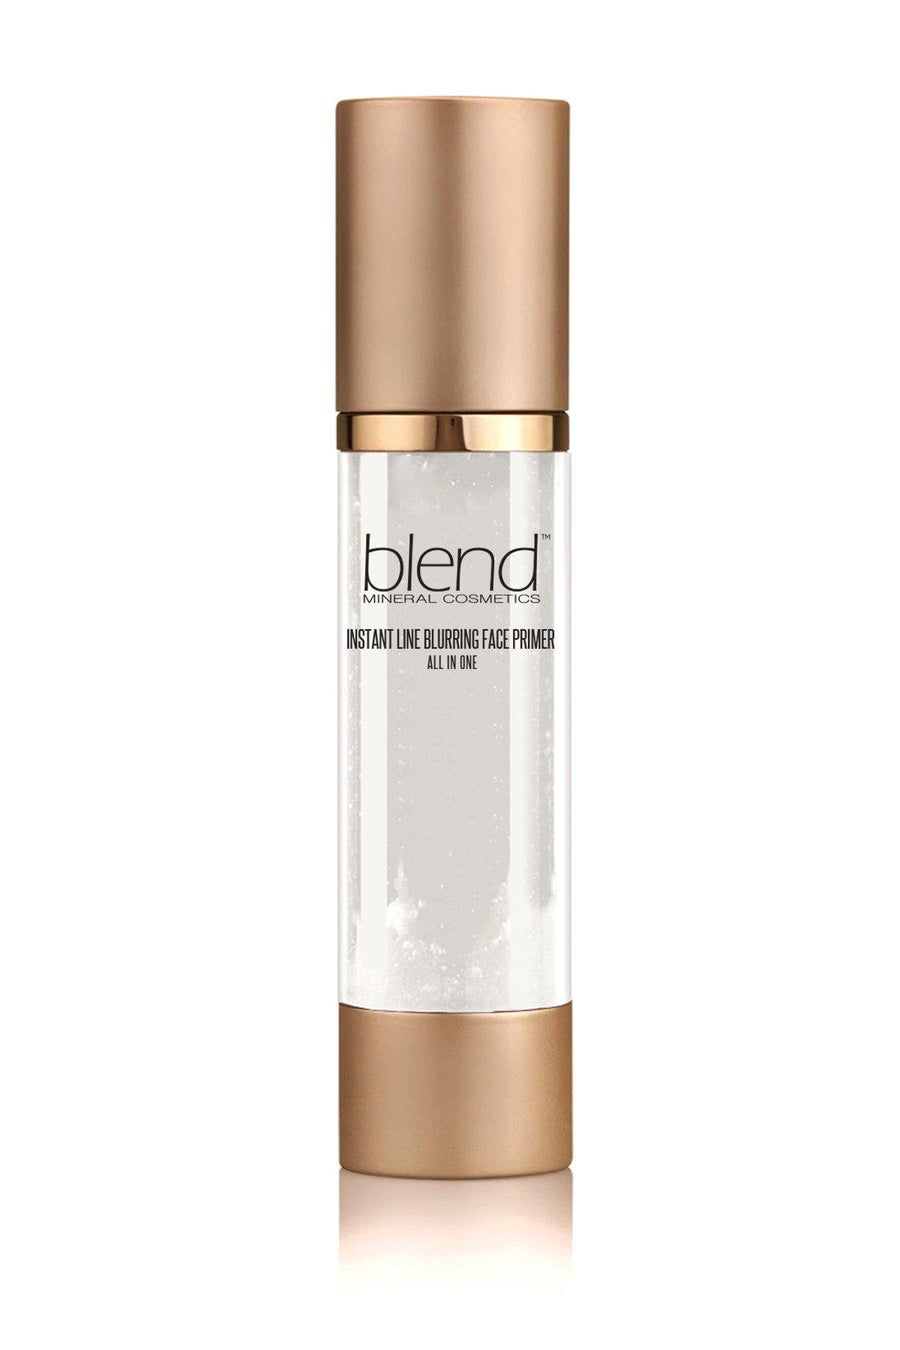 Instant Line Blurring Face Primer - Blend Mineral Cosmetics